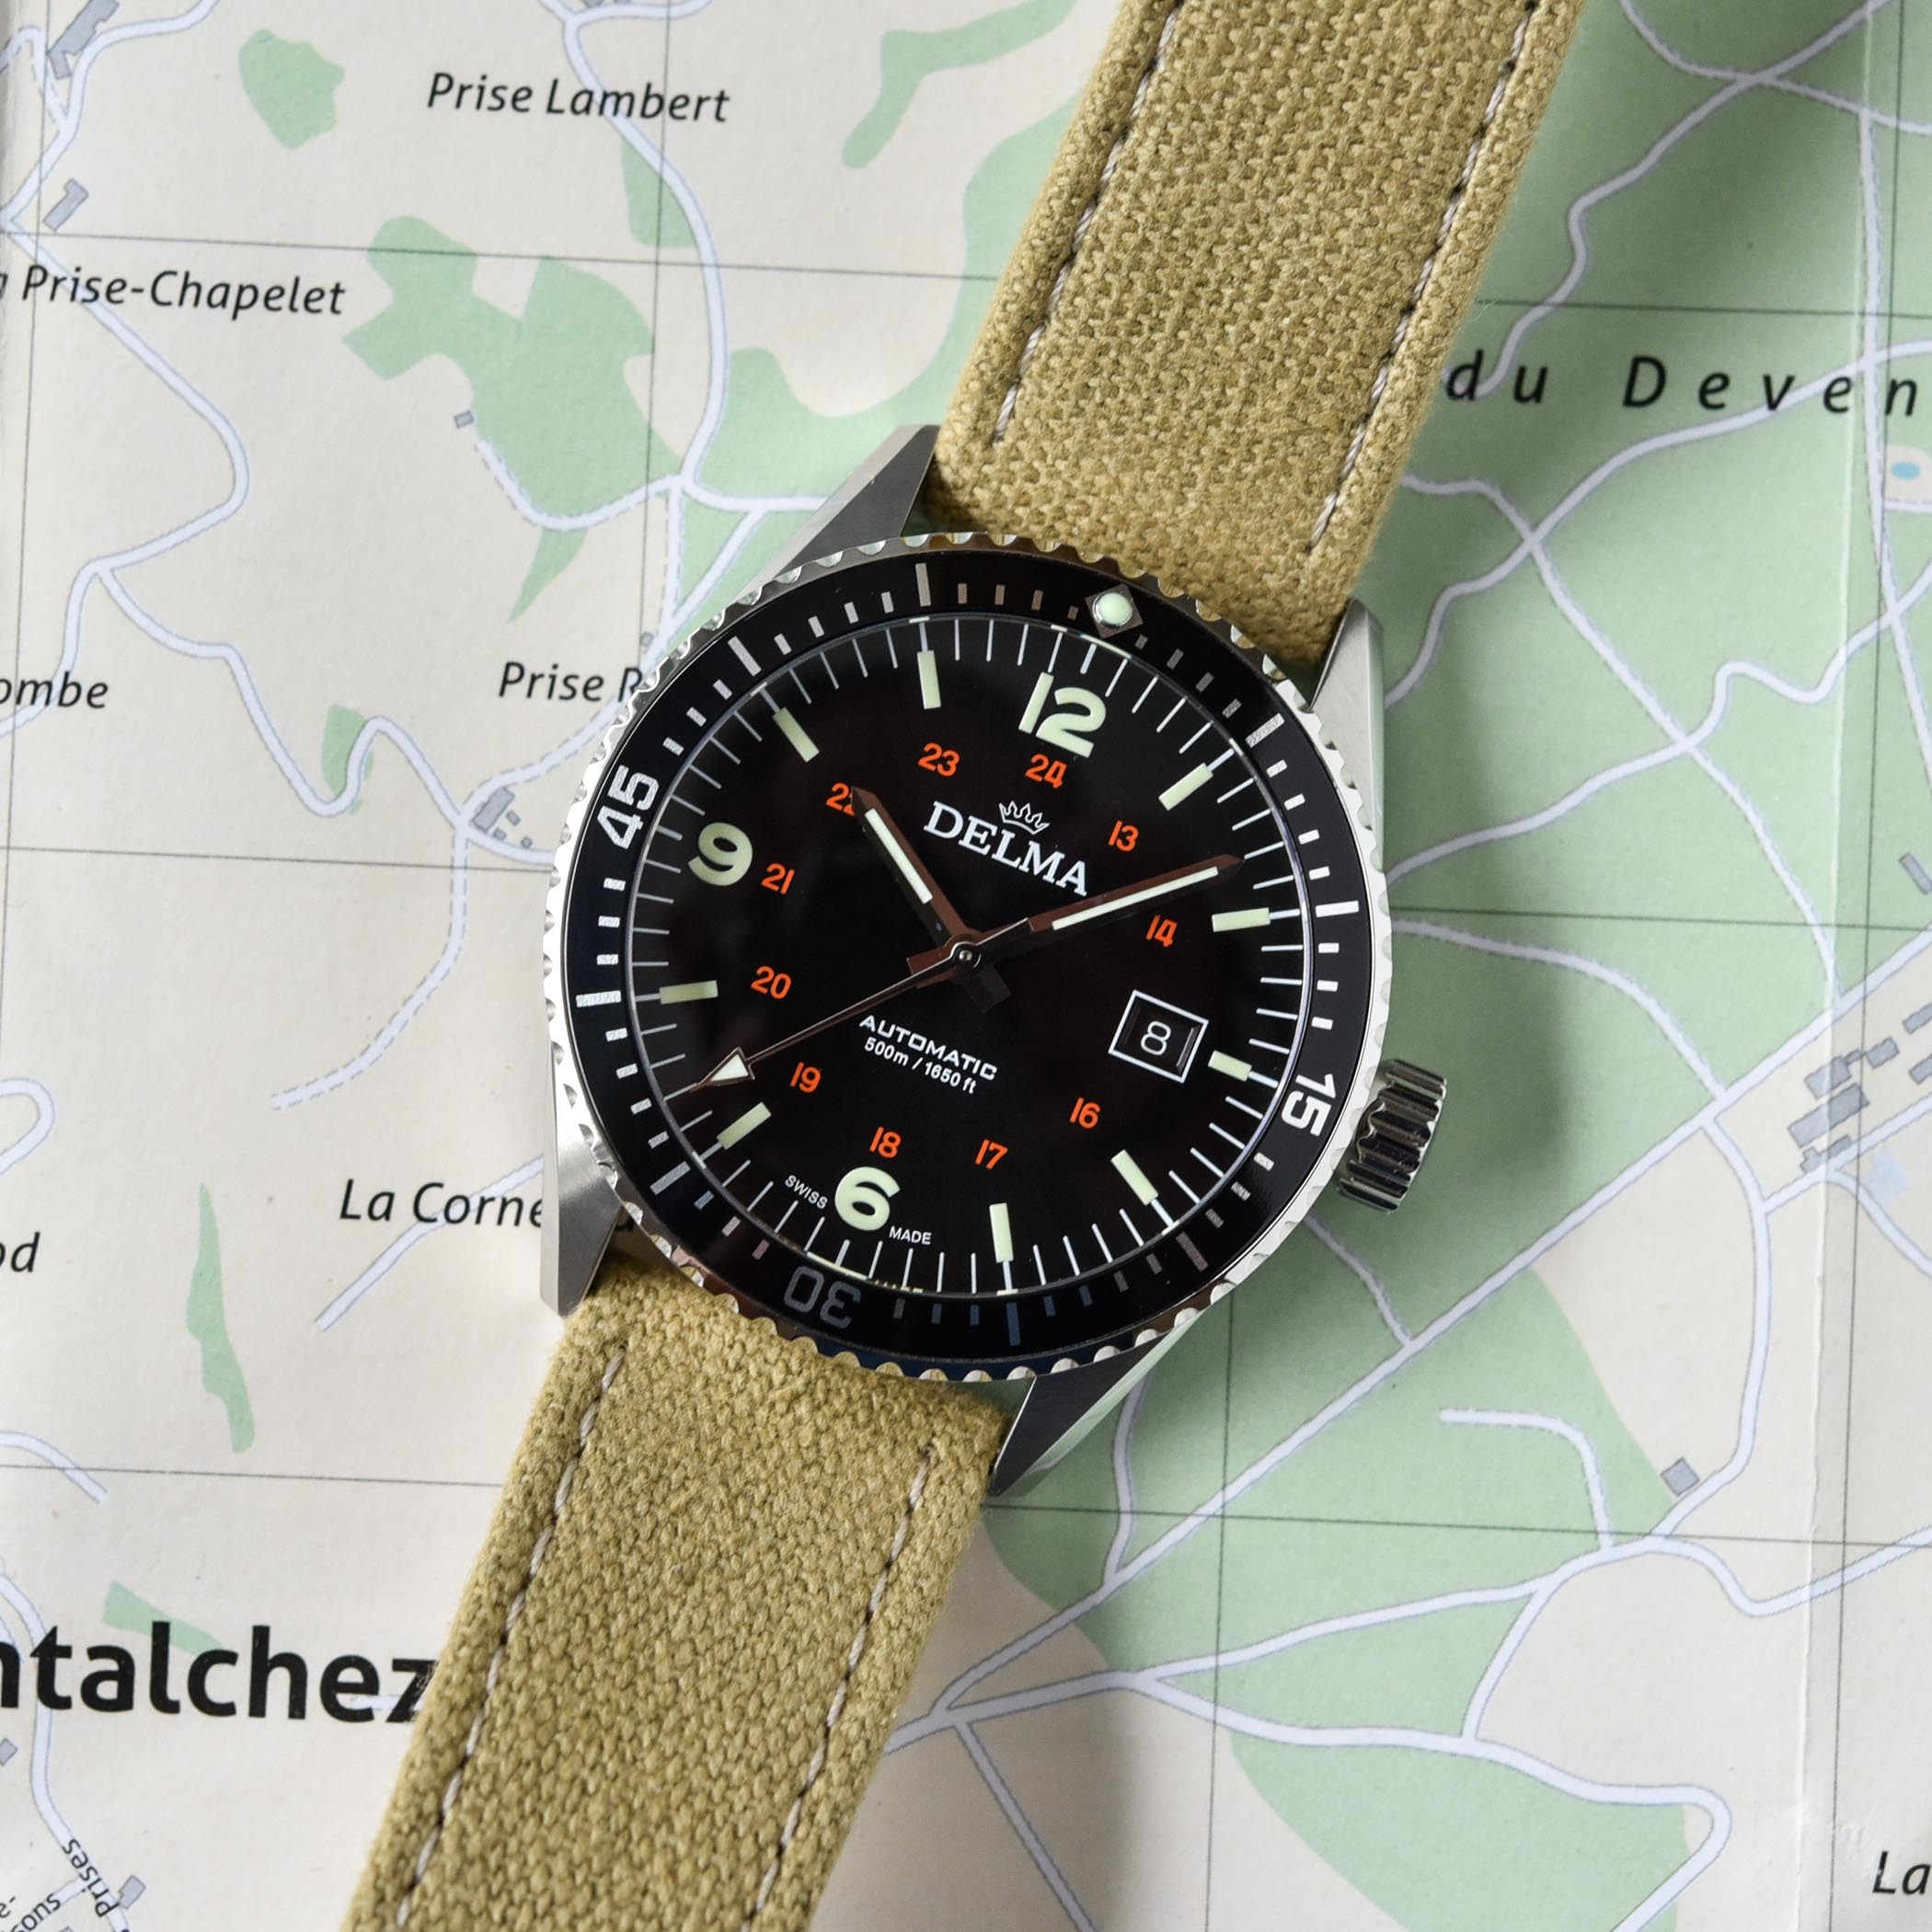 Delma Cayman Field Watch - Value Proposition review - 7